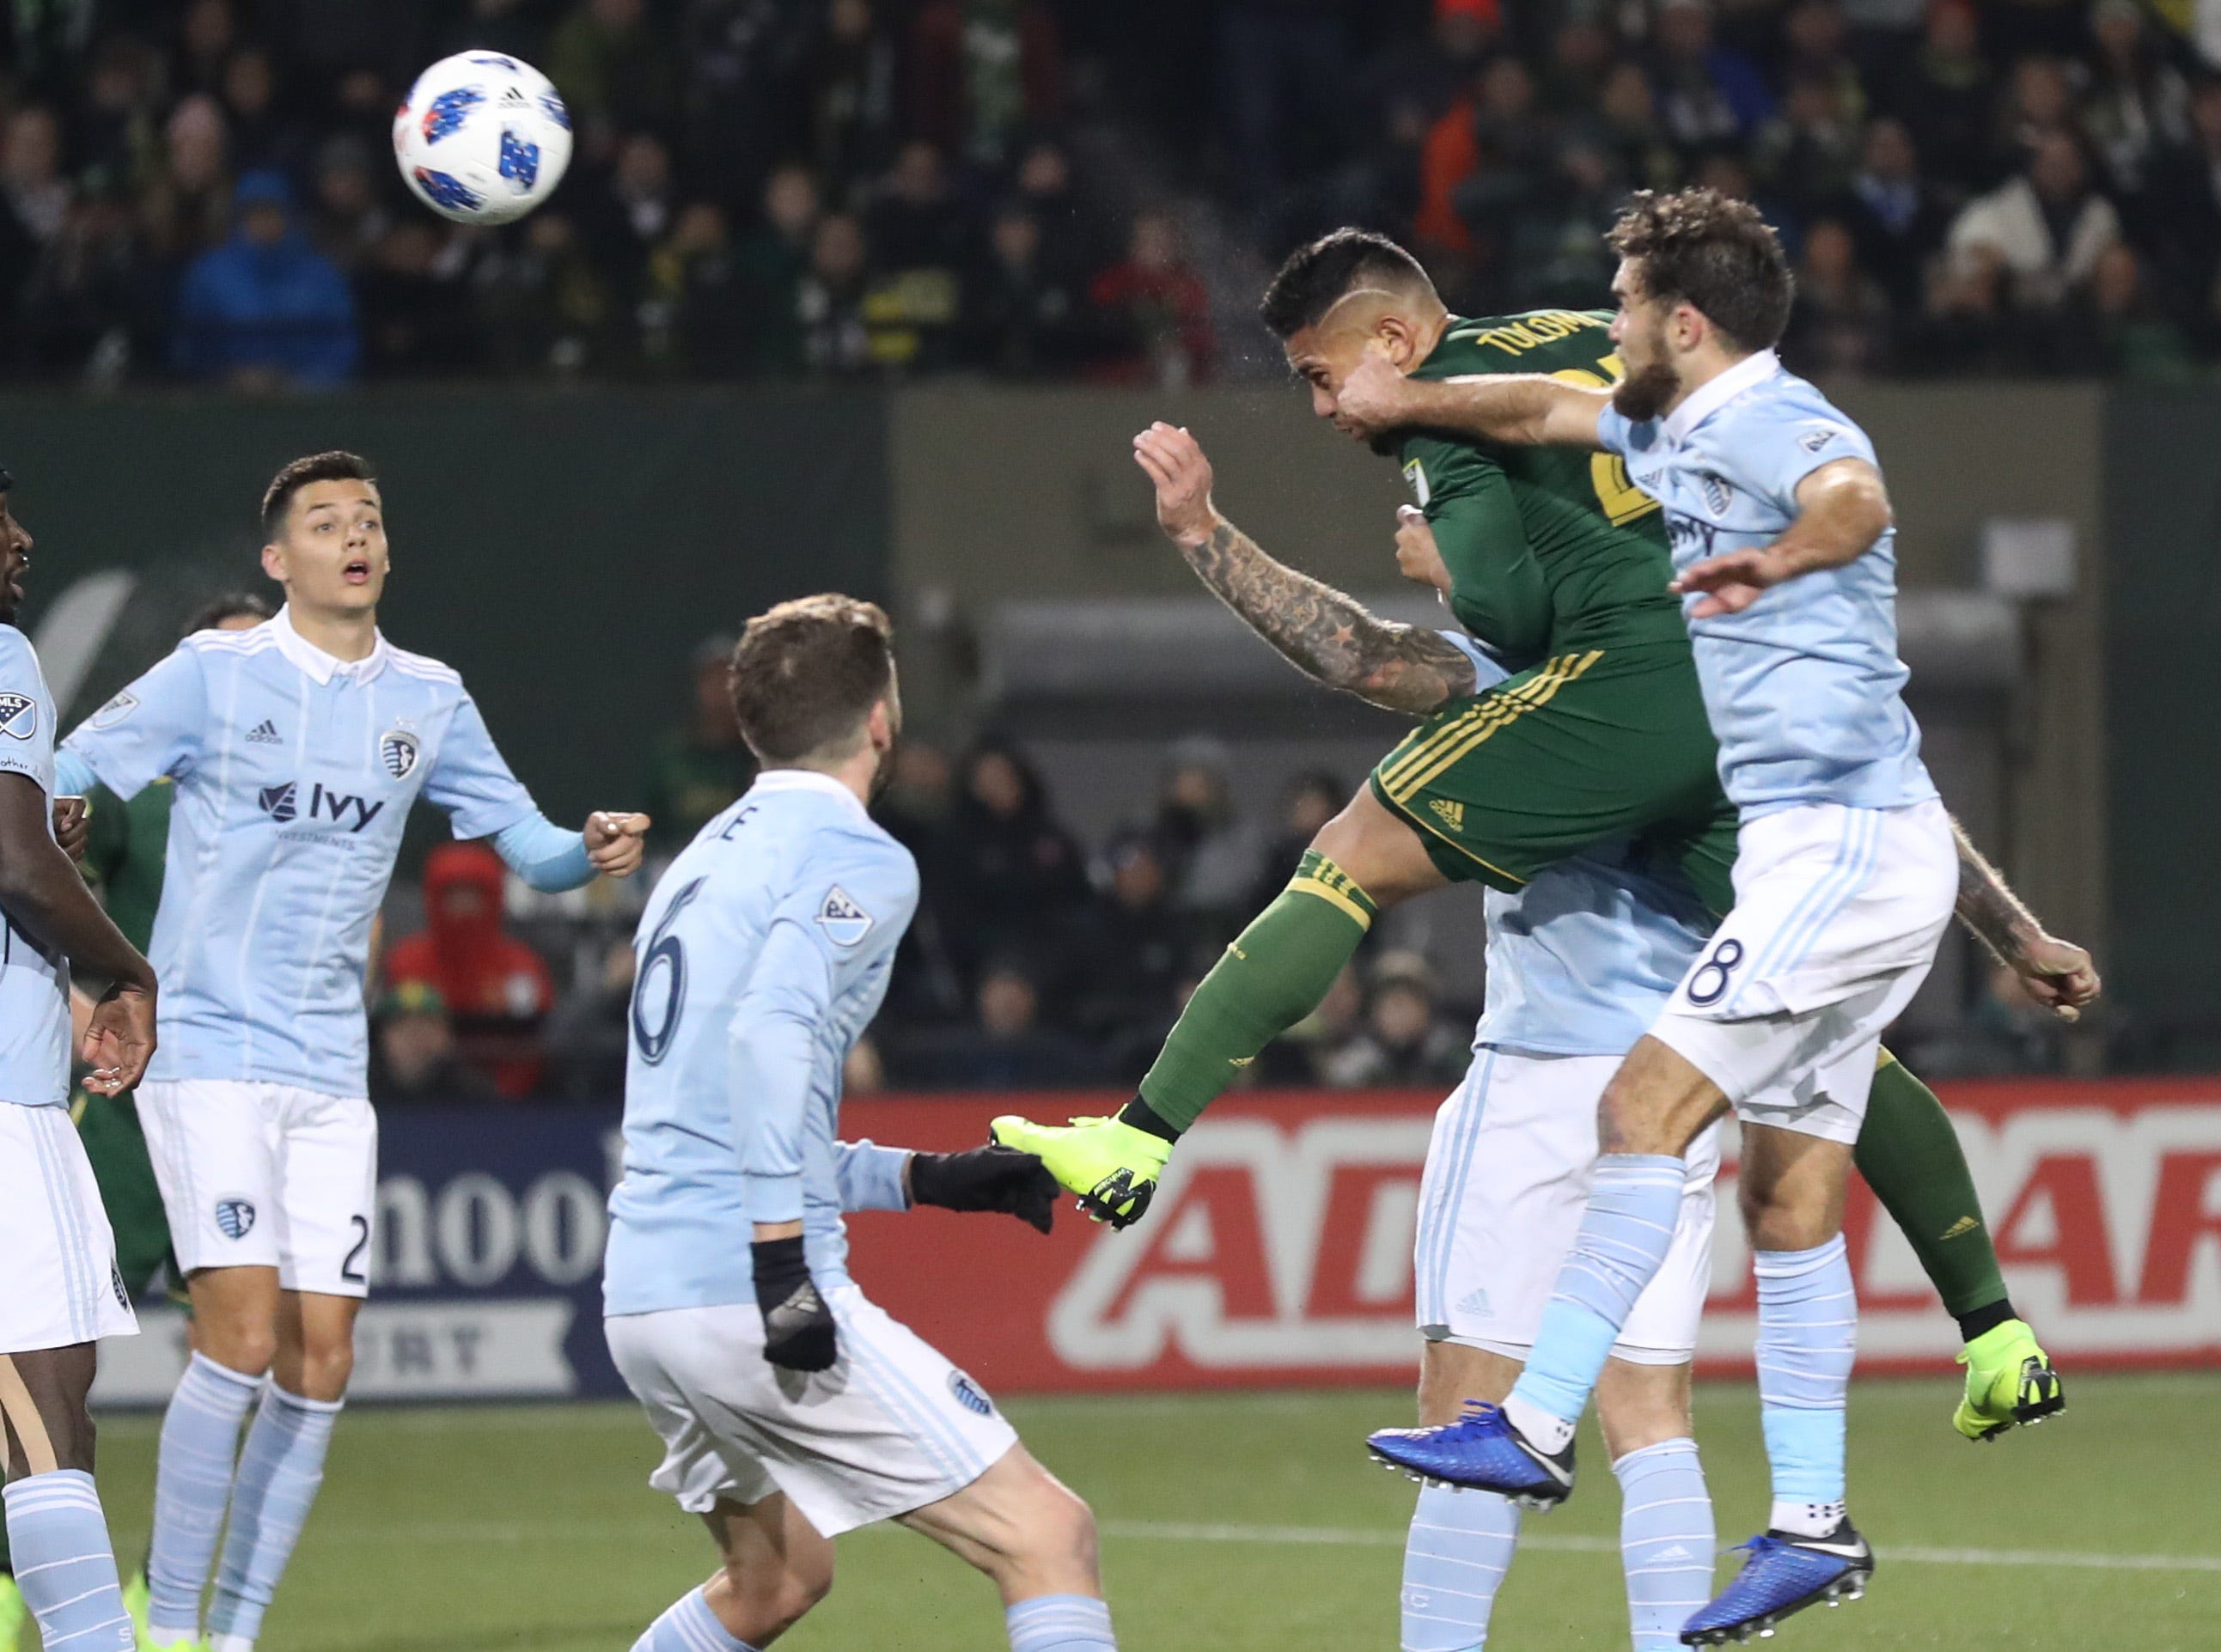 Nov 25, 2018; Portland, OR, USA; Portland Timbers defender Bill Tuiloma (25) heads the ball towards Sporting Kansas City's goal in the second of the first leg of the MLS Western Conference Championship at Providence Park. Mandatory Credit: Jaime Valdez-USA TODAY Sports